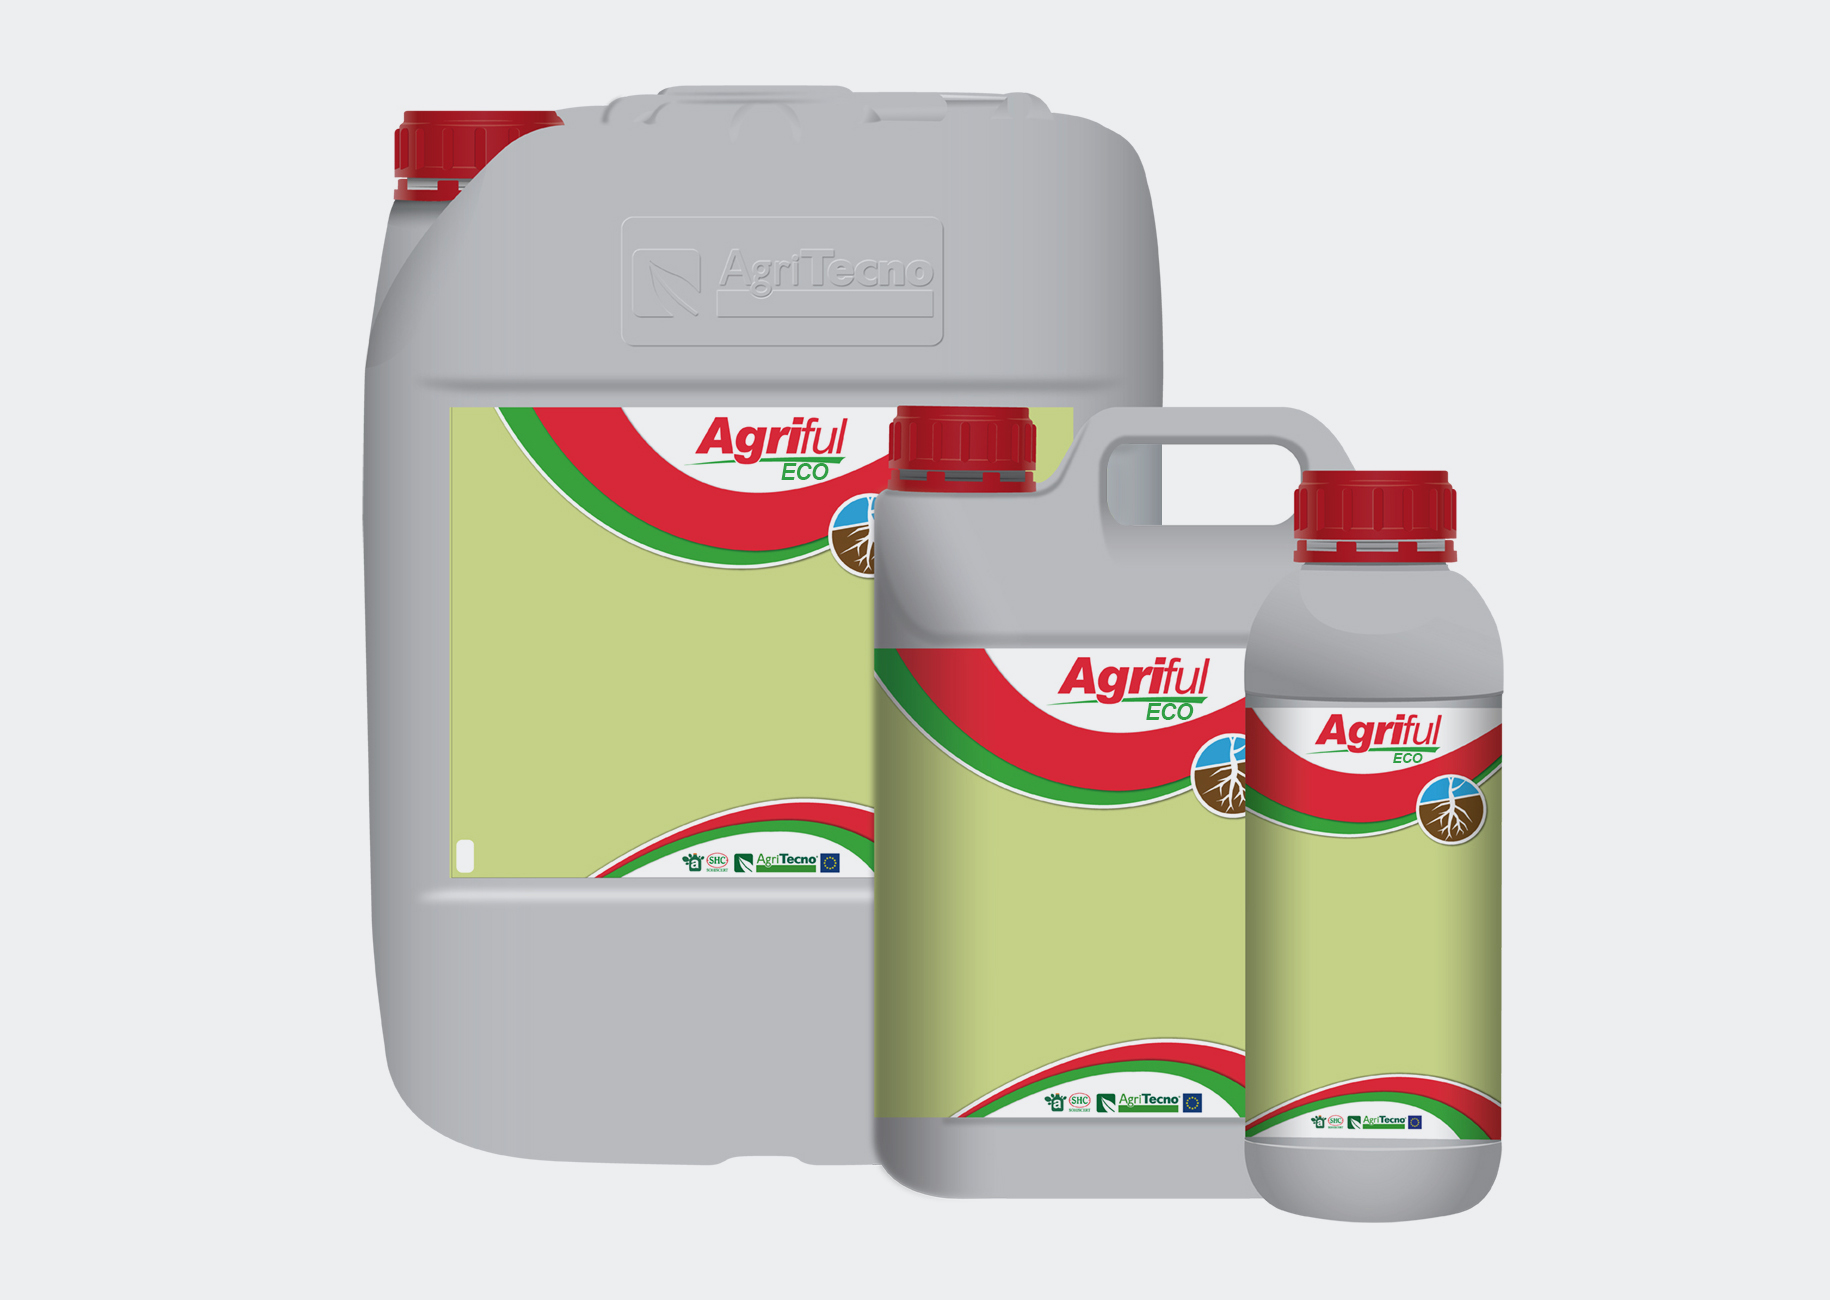 AGRIFUL ECO-p-gris